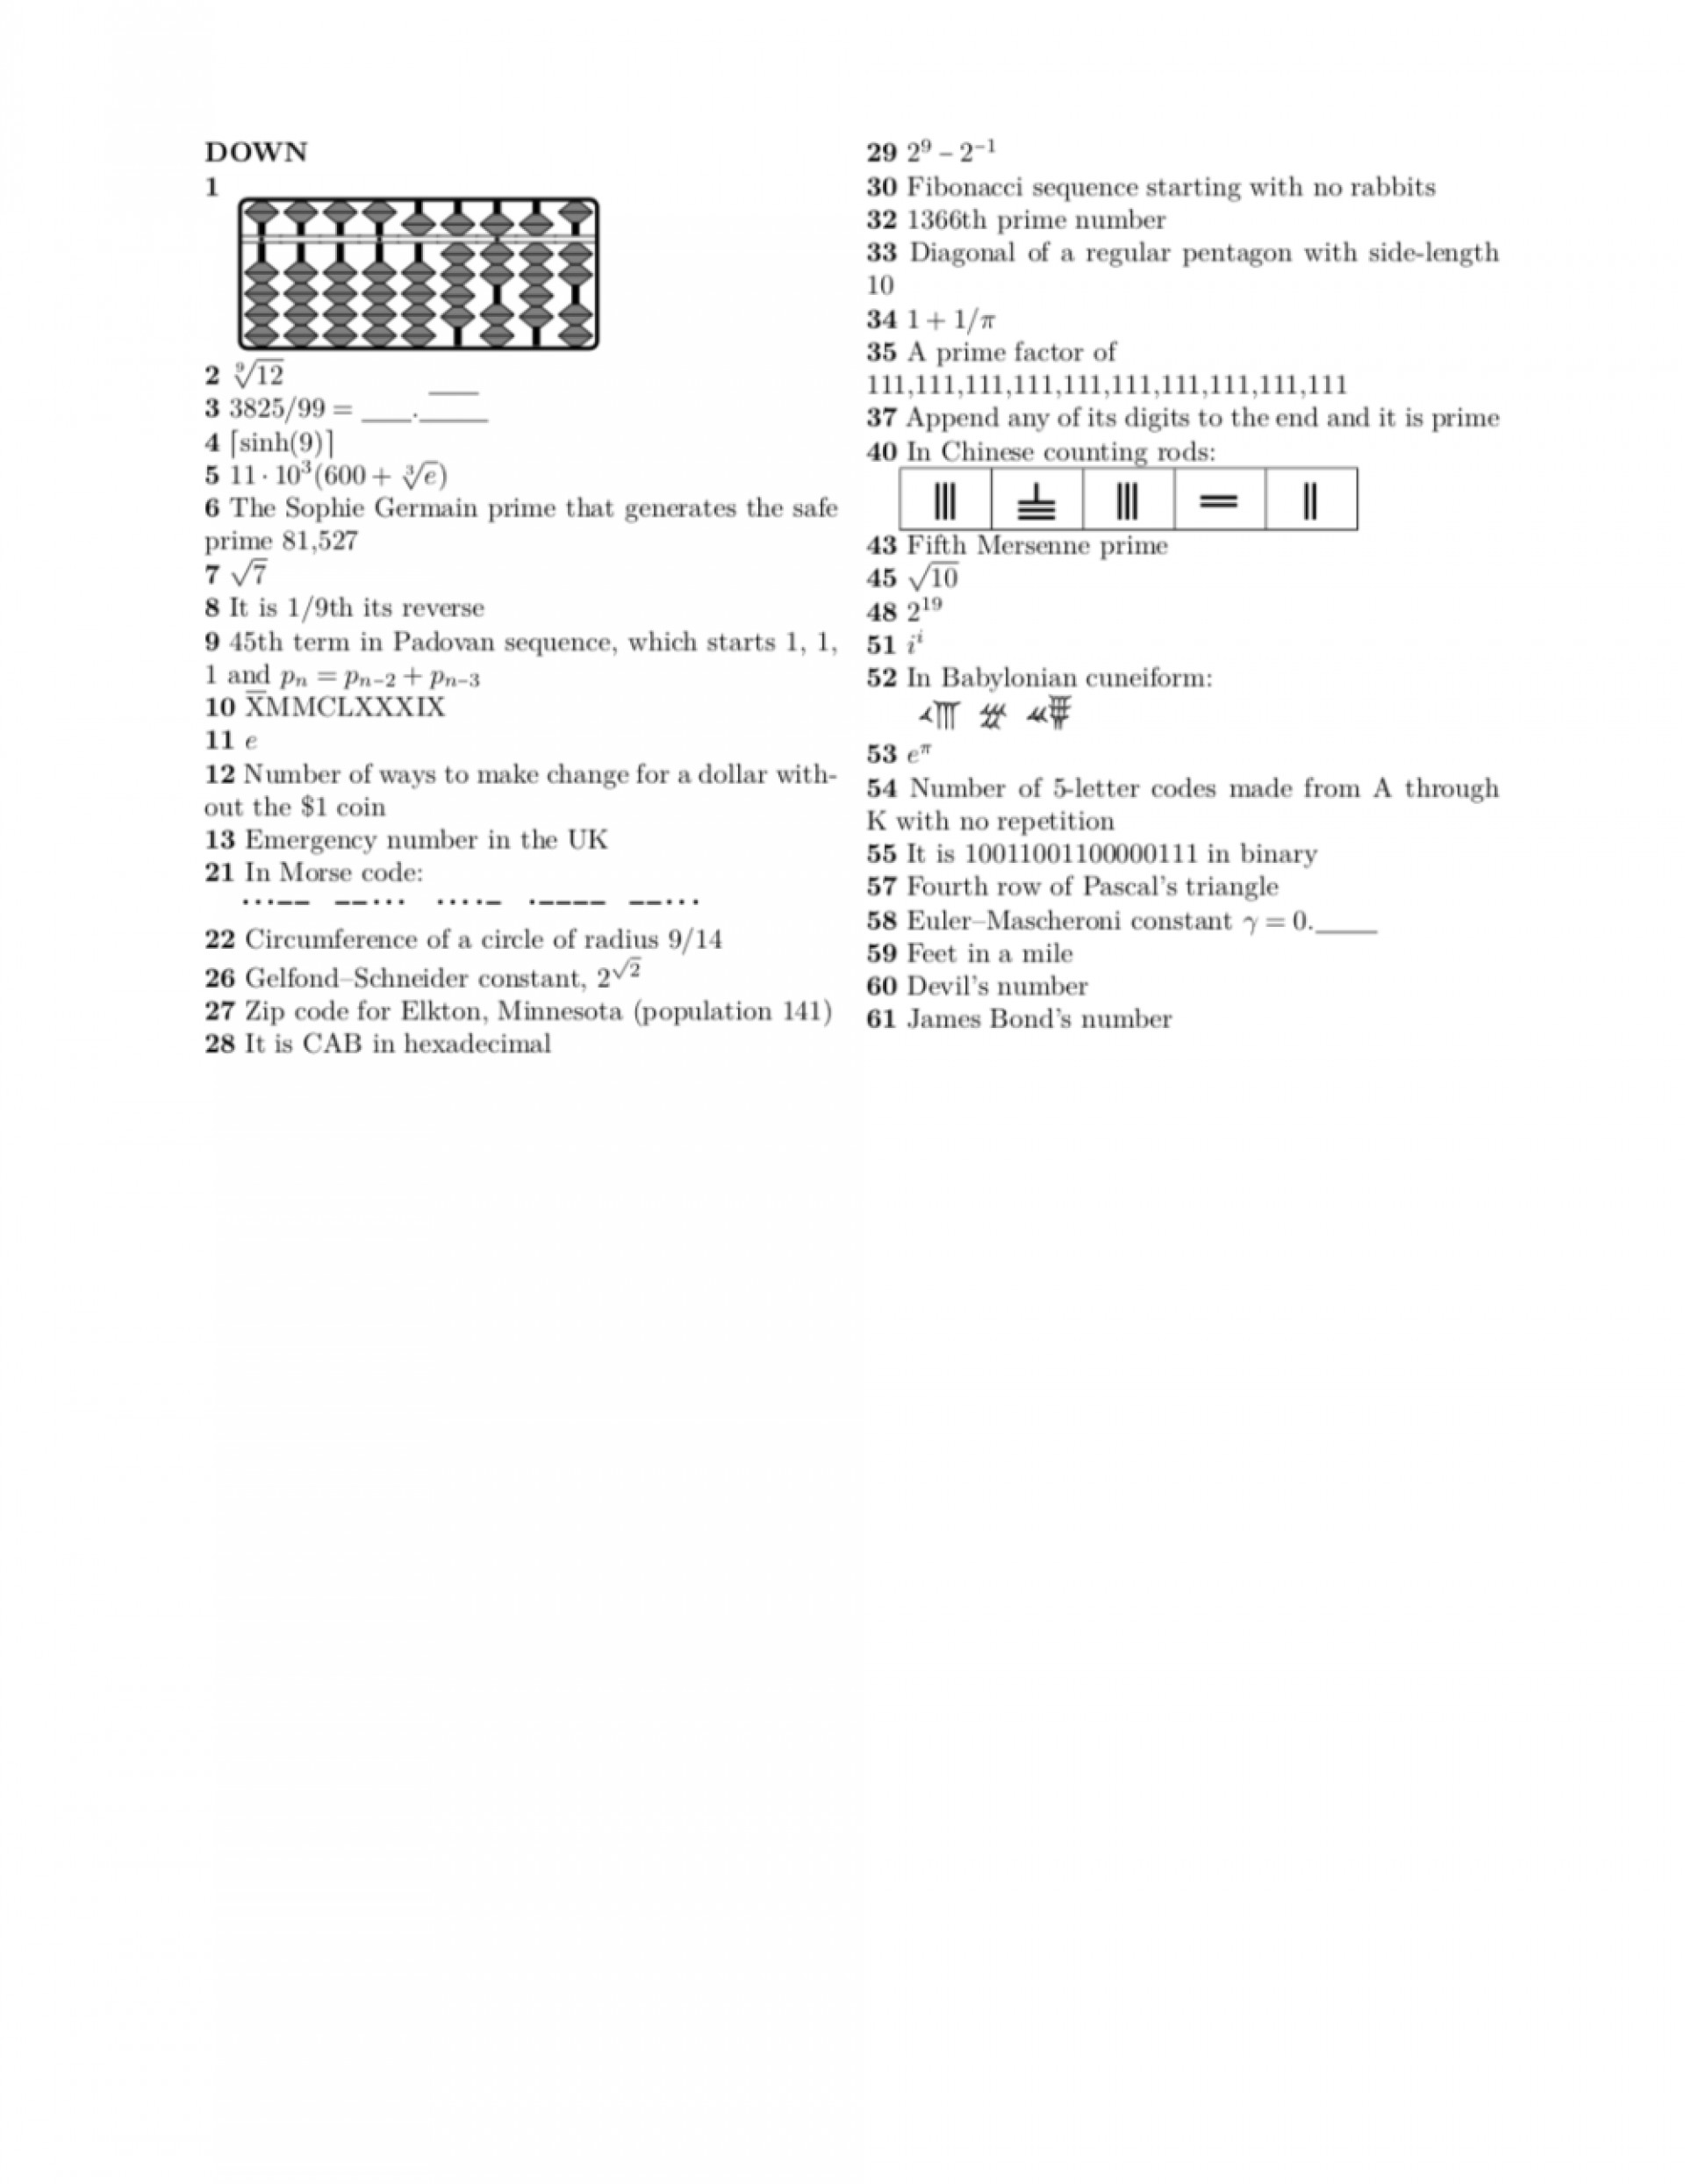 011 Academic Researchs Crossword Screen Shot At Pmw1000 Awful Research Papers Paper Clue 1920